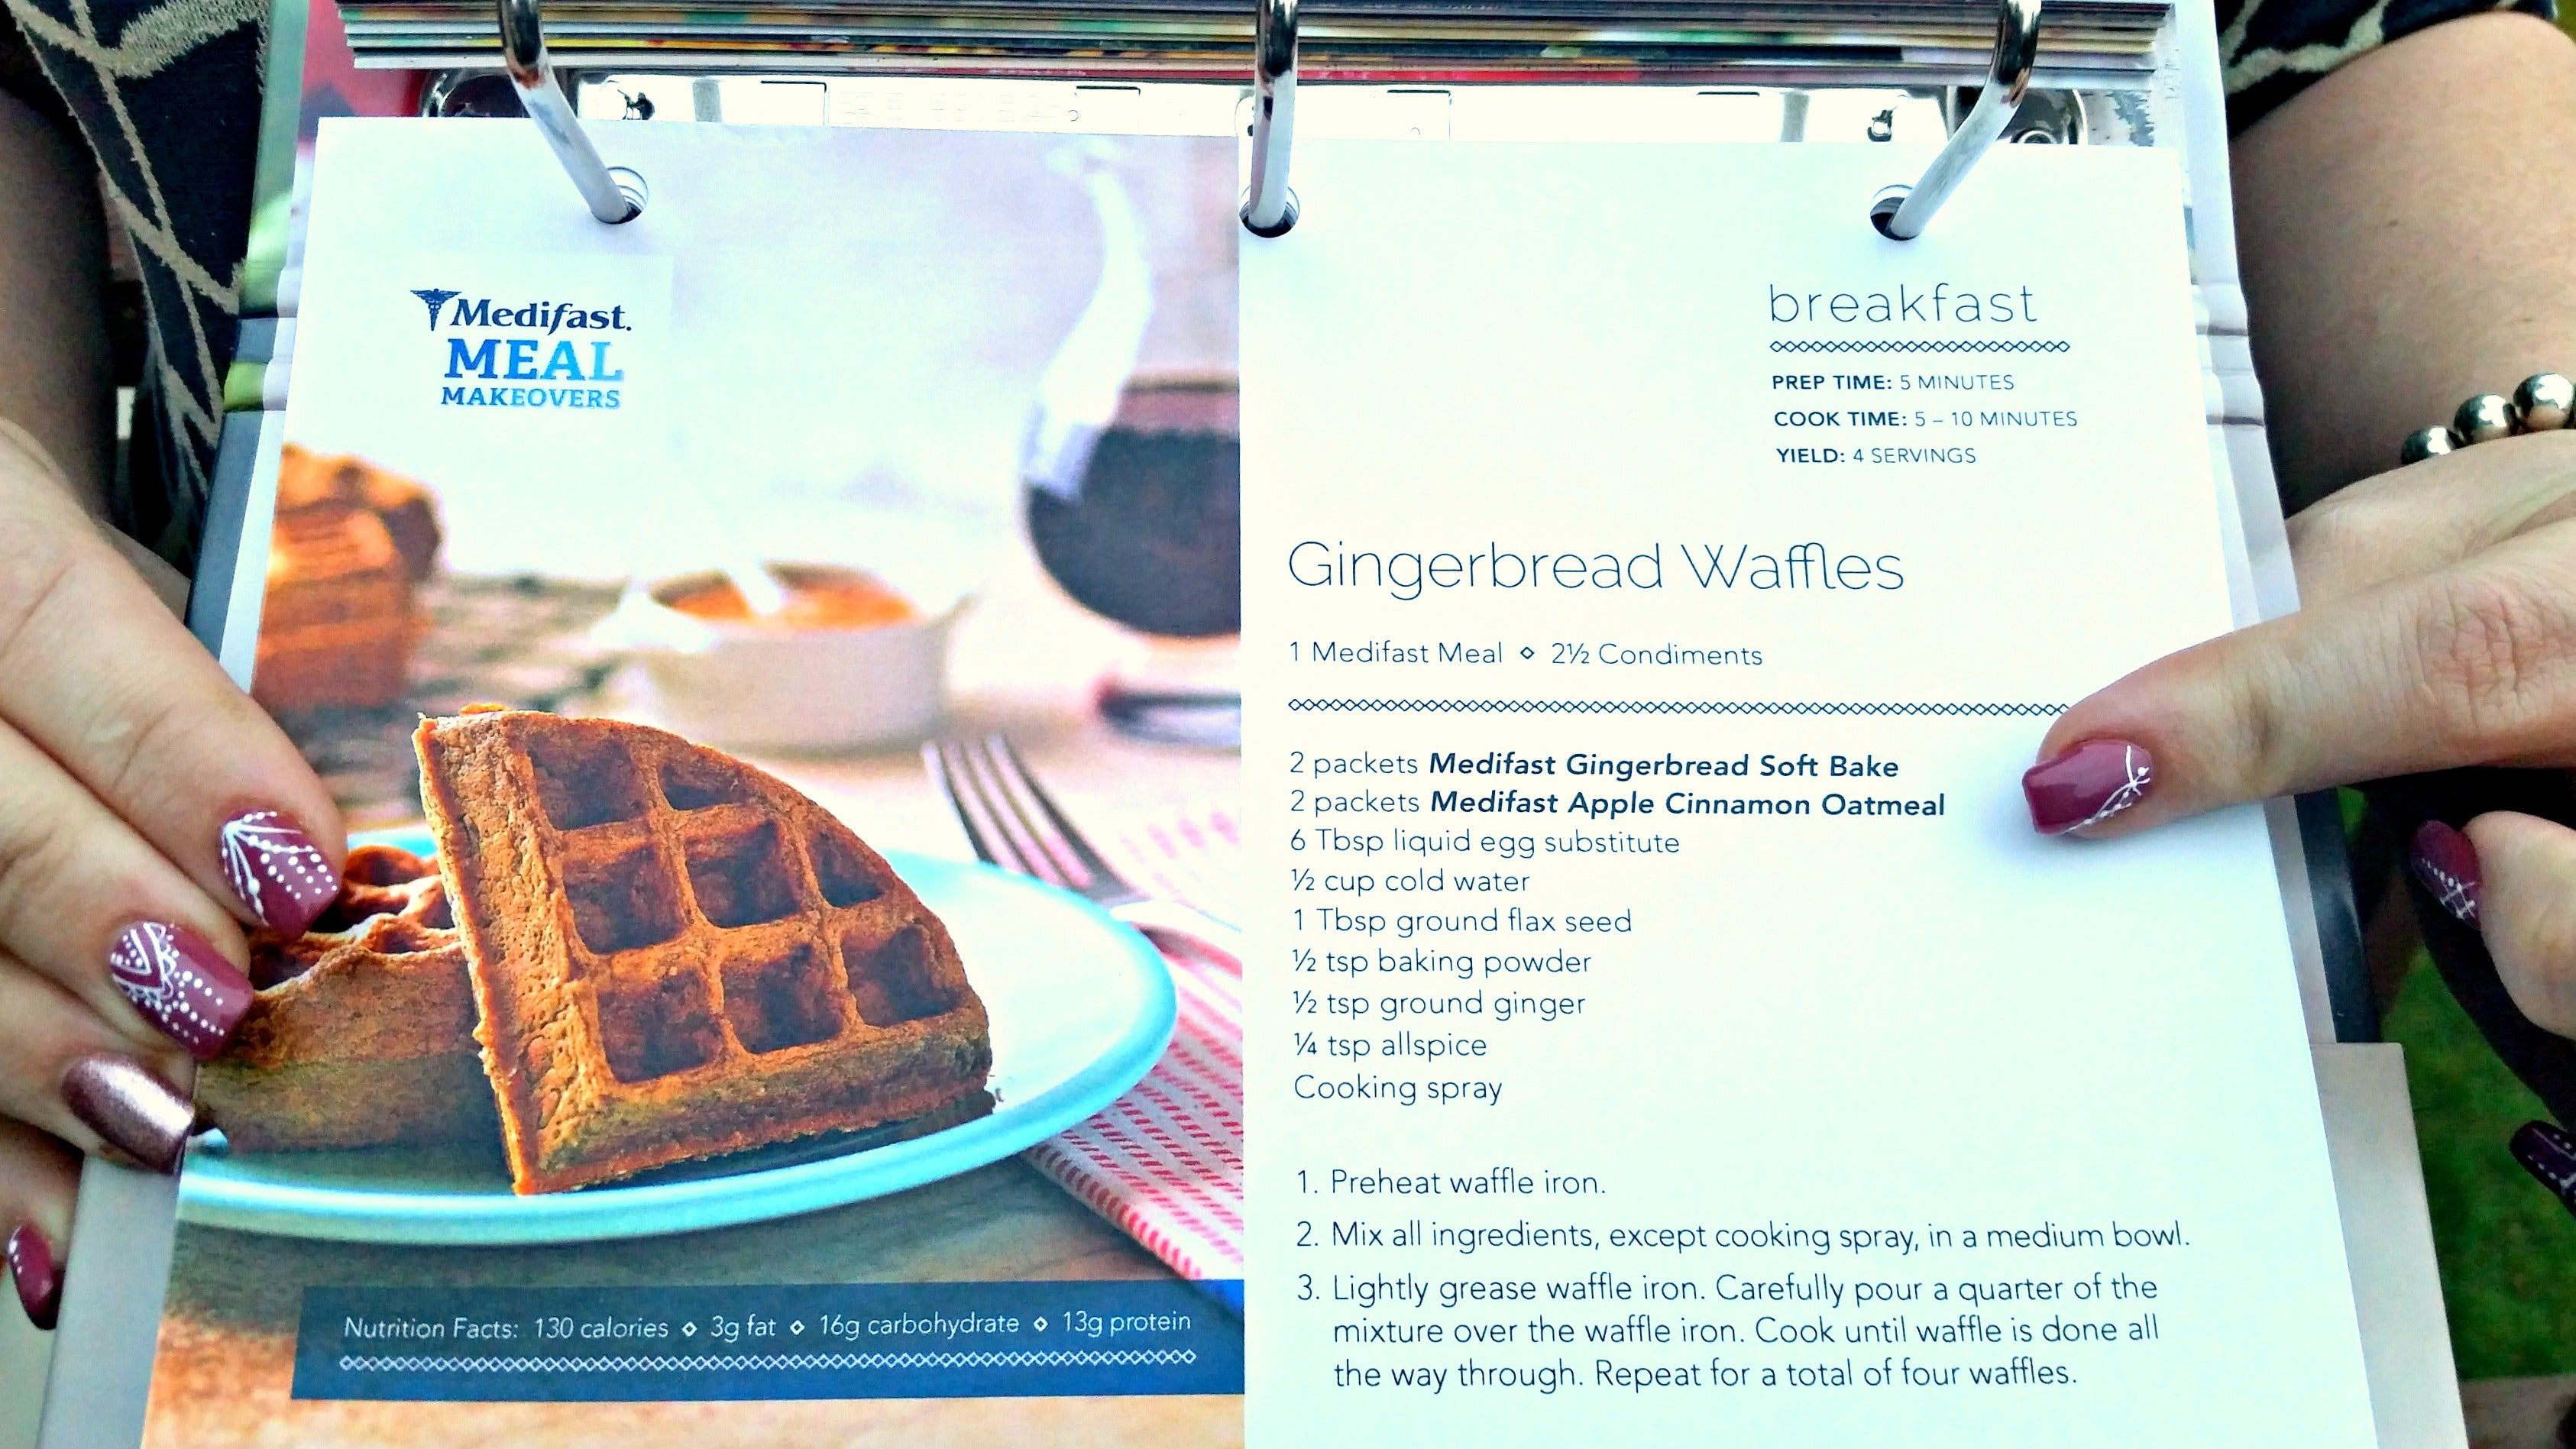 #Holiday #recipes (like Gingerbread waffles) - and how to stick to your diet during the fall season! via @agirlsgottaspa #sponsored #medifast #yum